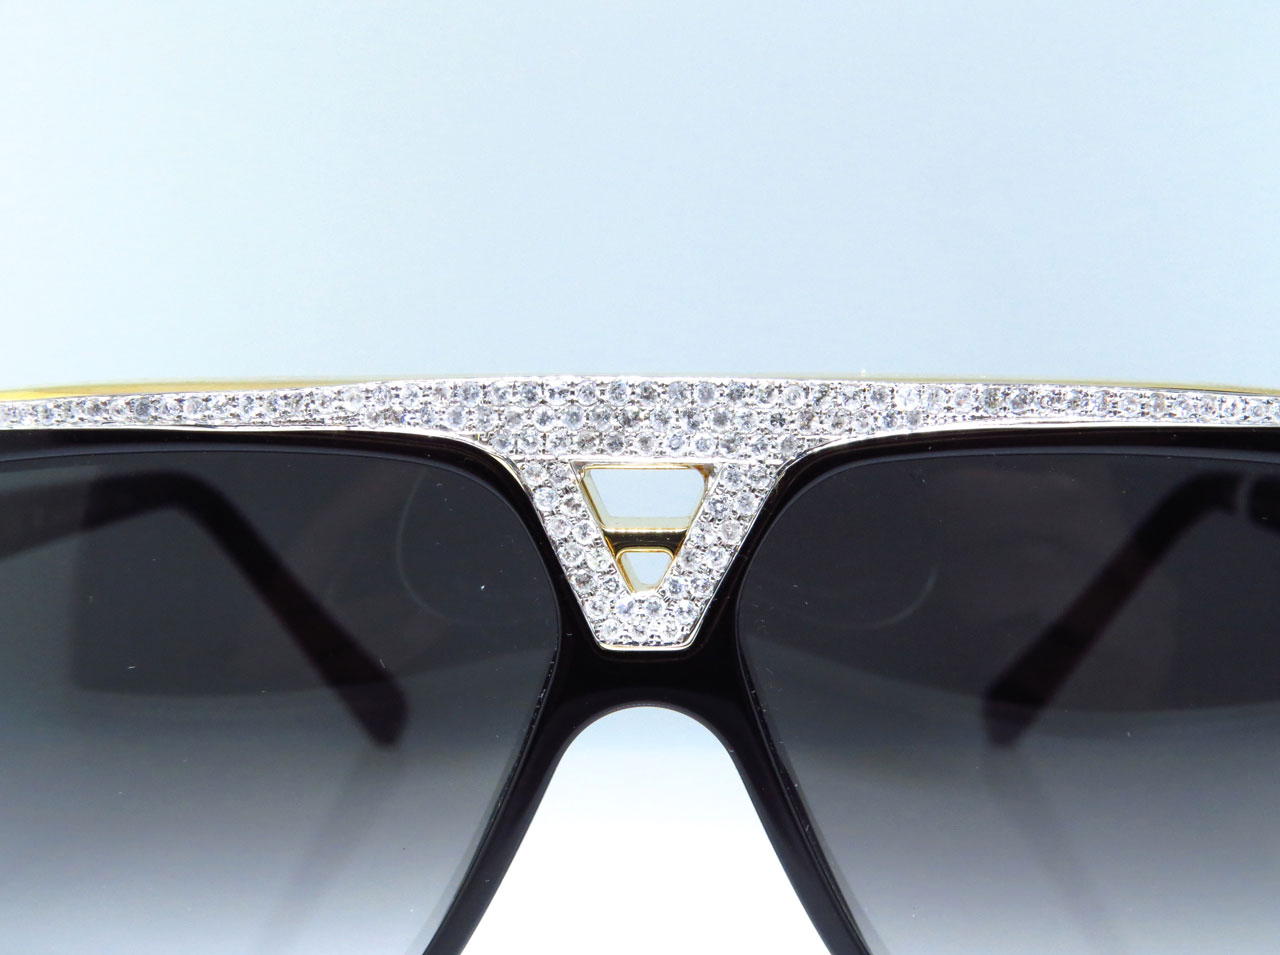 80ff513a224 Louis Vuitton - Louis Vuitton Louis Vuitton Diamond Aviator Sunglasses  Evidence Black   Gold Z0350W 5.0 Ct. - Walmart.com